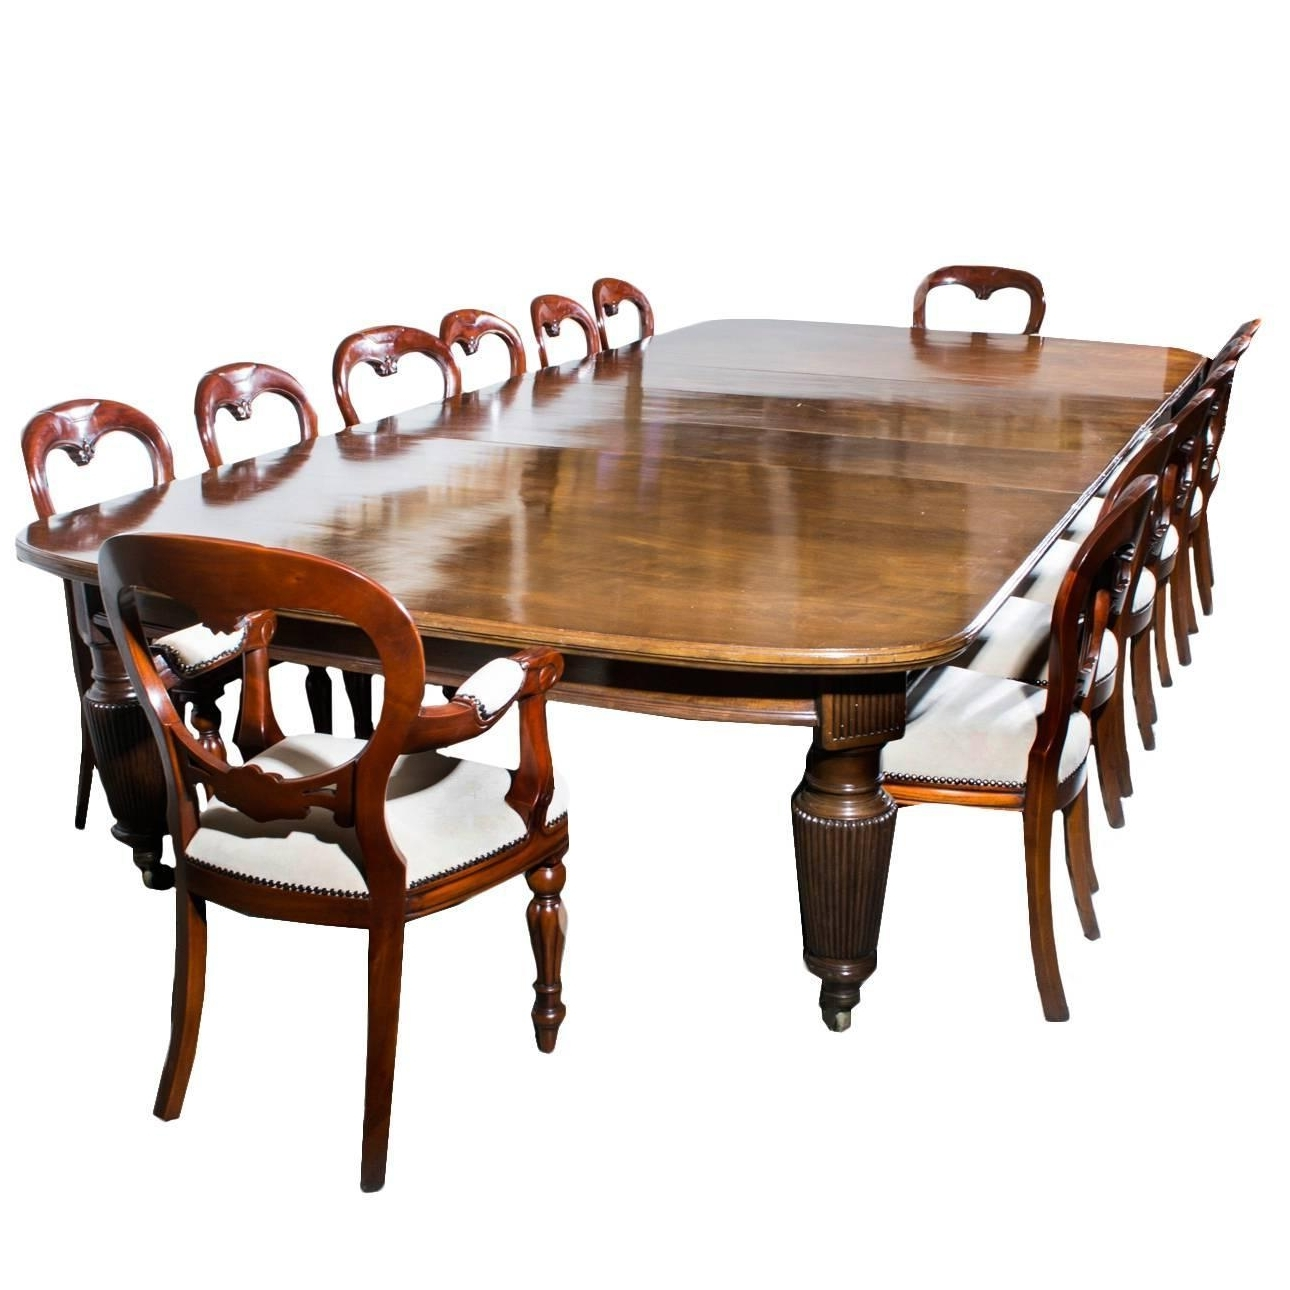 Antique Extending Dining Table 14 Chairs, Circa 1880 Within Trendy Oval Extending Dining Tables And Chairs (View 18 of 25)